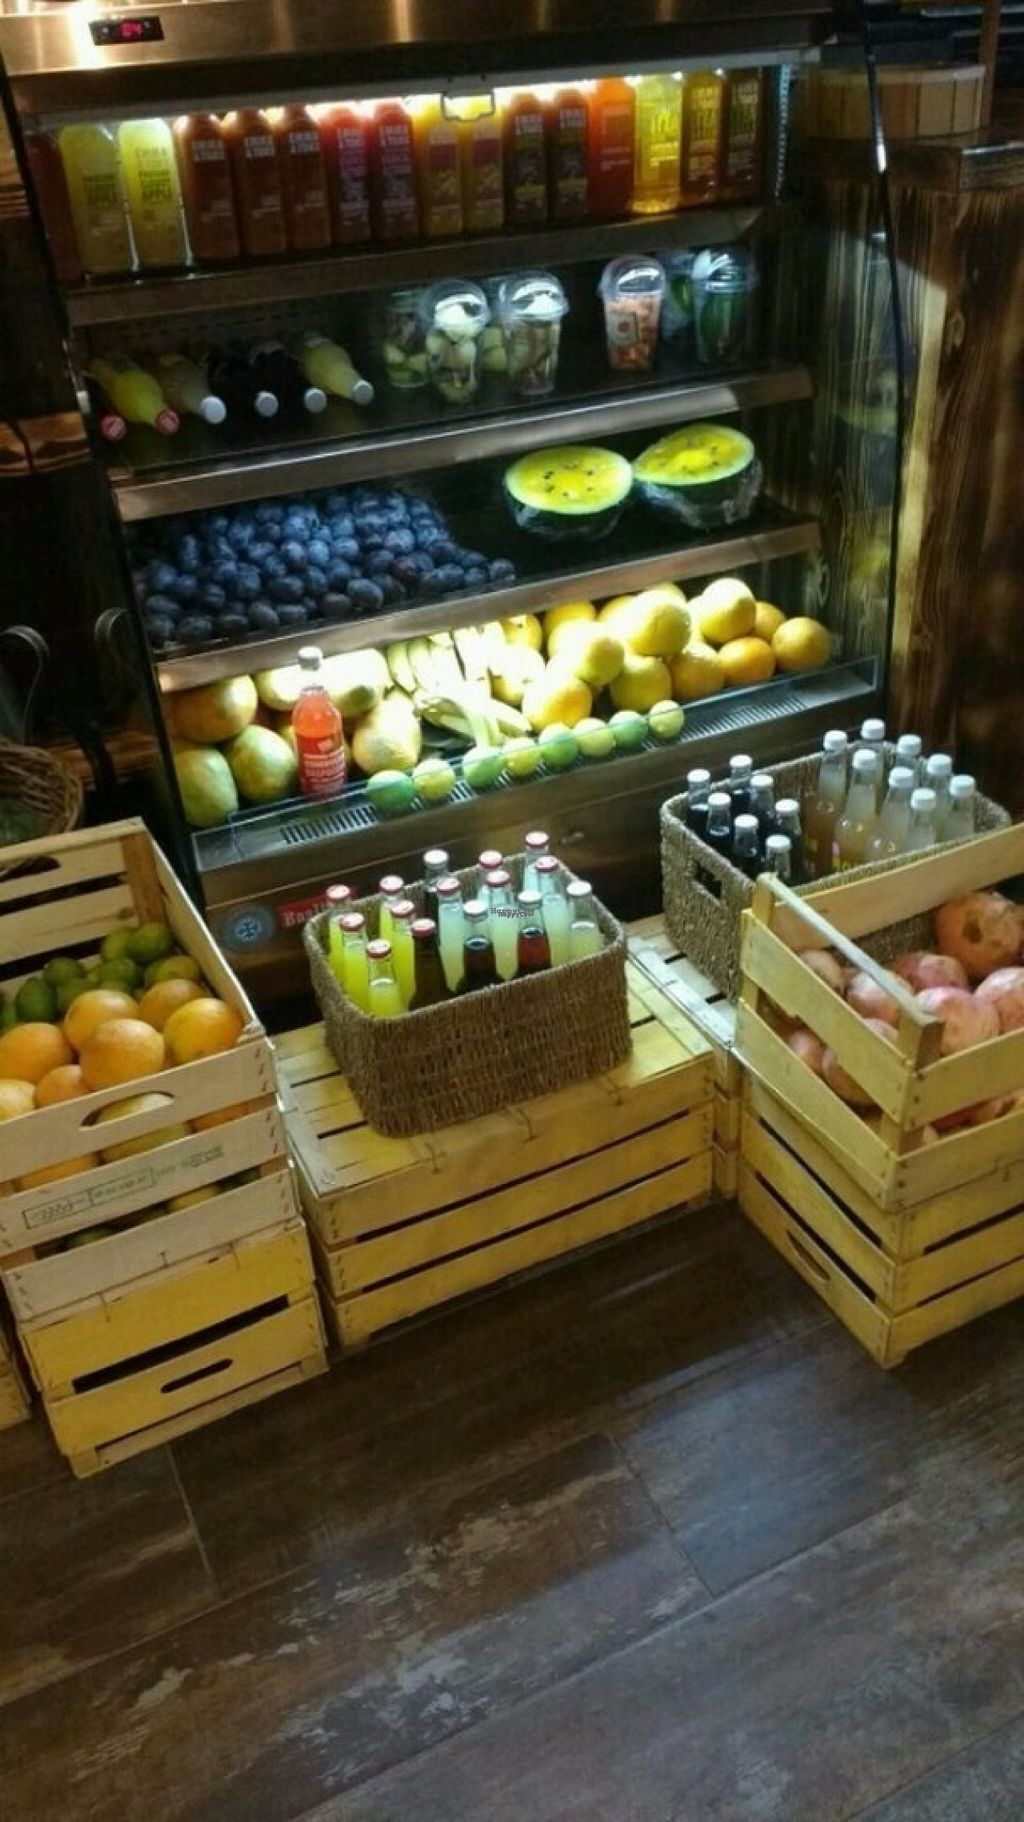 "Photo of We Farm  by <a href=""/members/profile/strickvl"">strickvl</a> <br/>The vegetable & fruit fridge from which they make smoothies <br/> August 21, 2016  - <a href='/contact/abuse/image/78954/170395'>Report</a>"